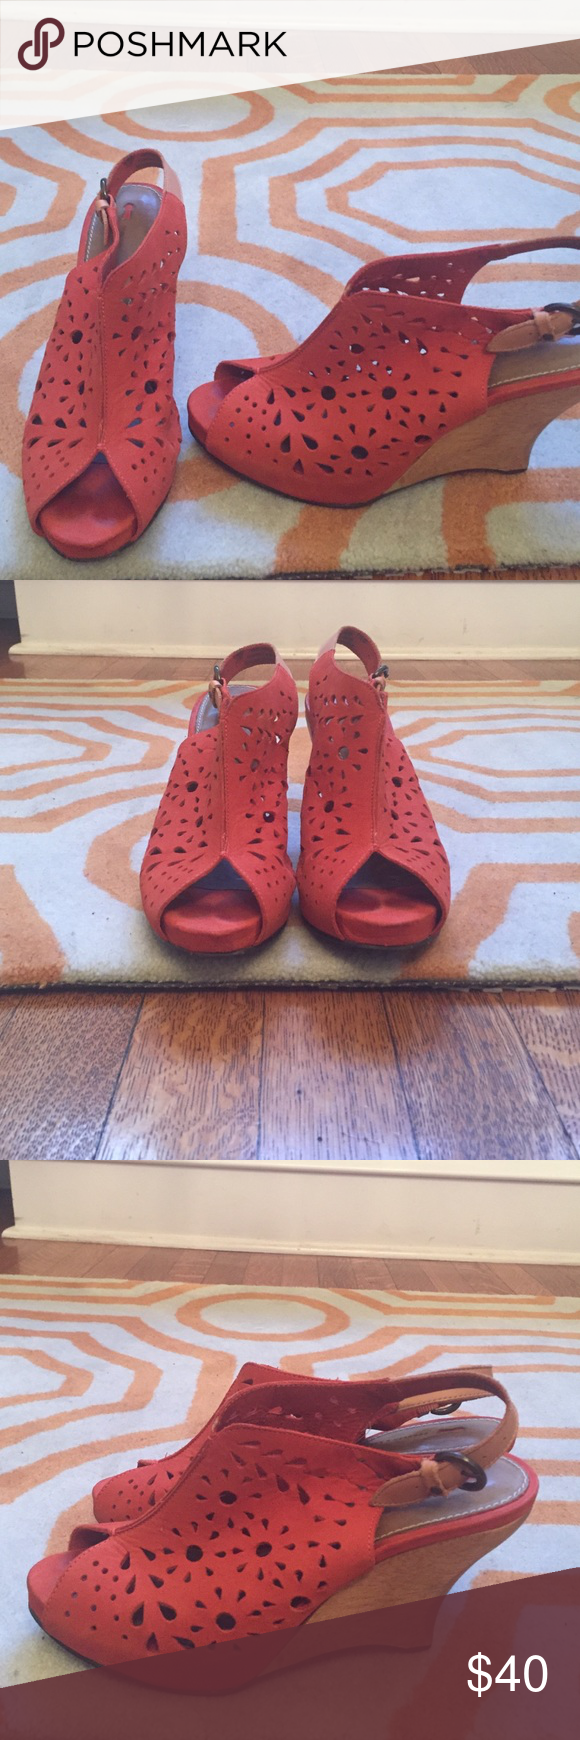 Anthropolgie wedges. Orange. Gorgeous Anthropologie wedges. Orange cutout leather. Wood wedge. One small scratch on heel. Size 7.5. Barely worn schuler and sons Shoes